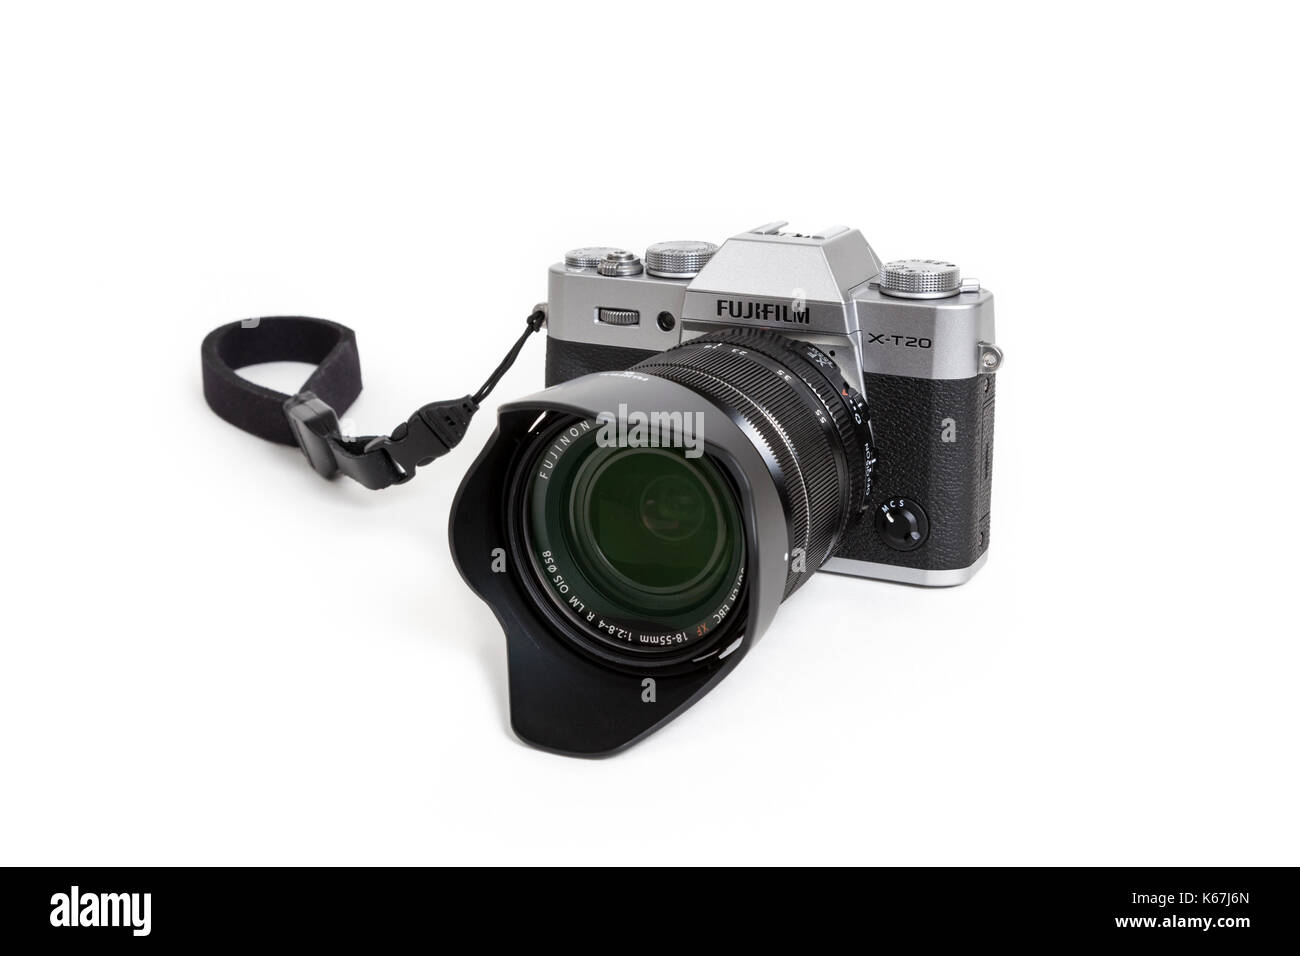 Fujifilm X-T20 mirrorless digital camera with the 18-55 mm lens, lens hood and wrist strap on a white background - Stock Image